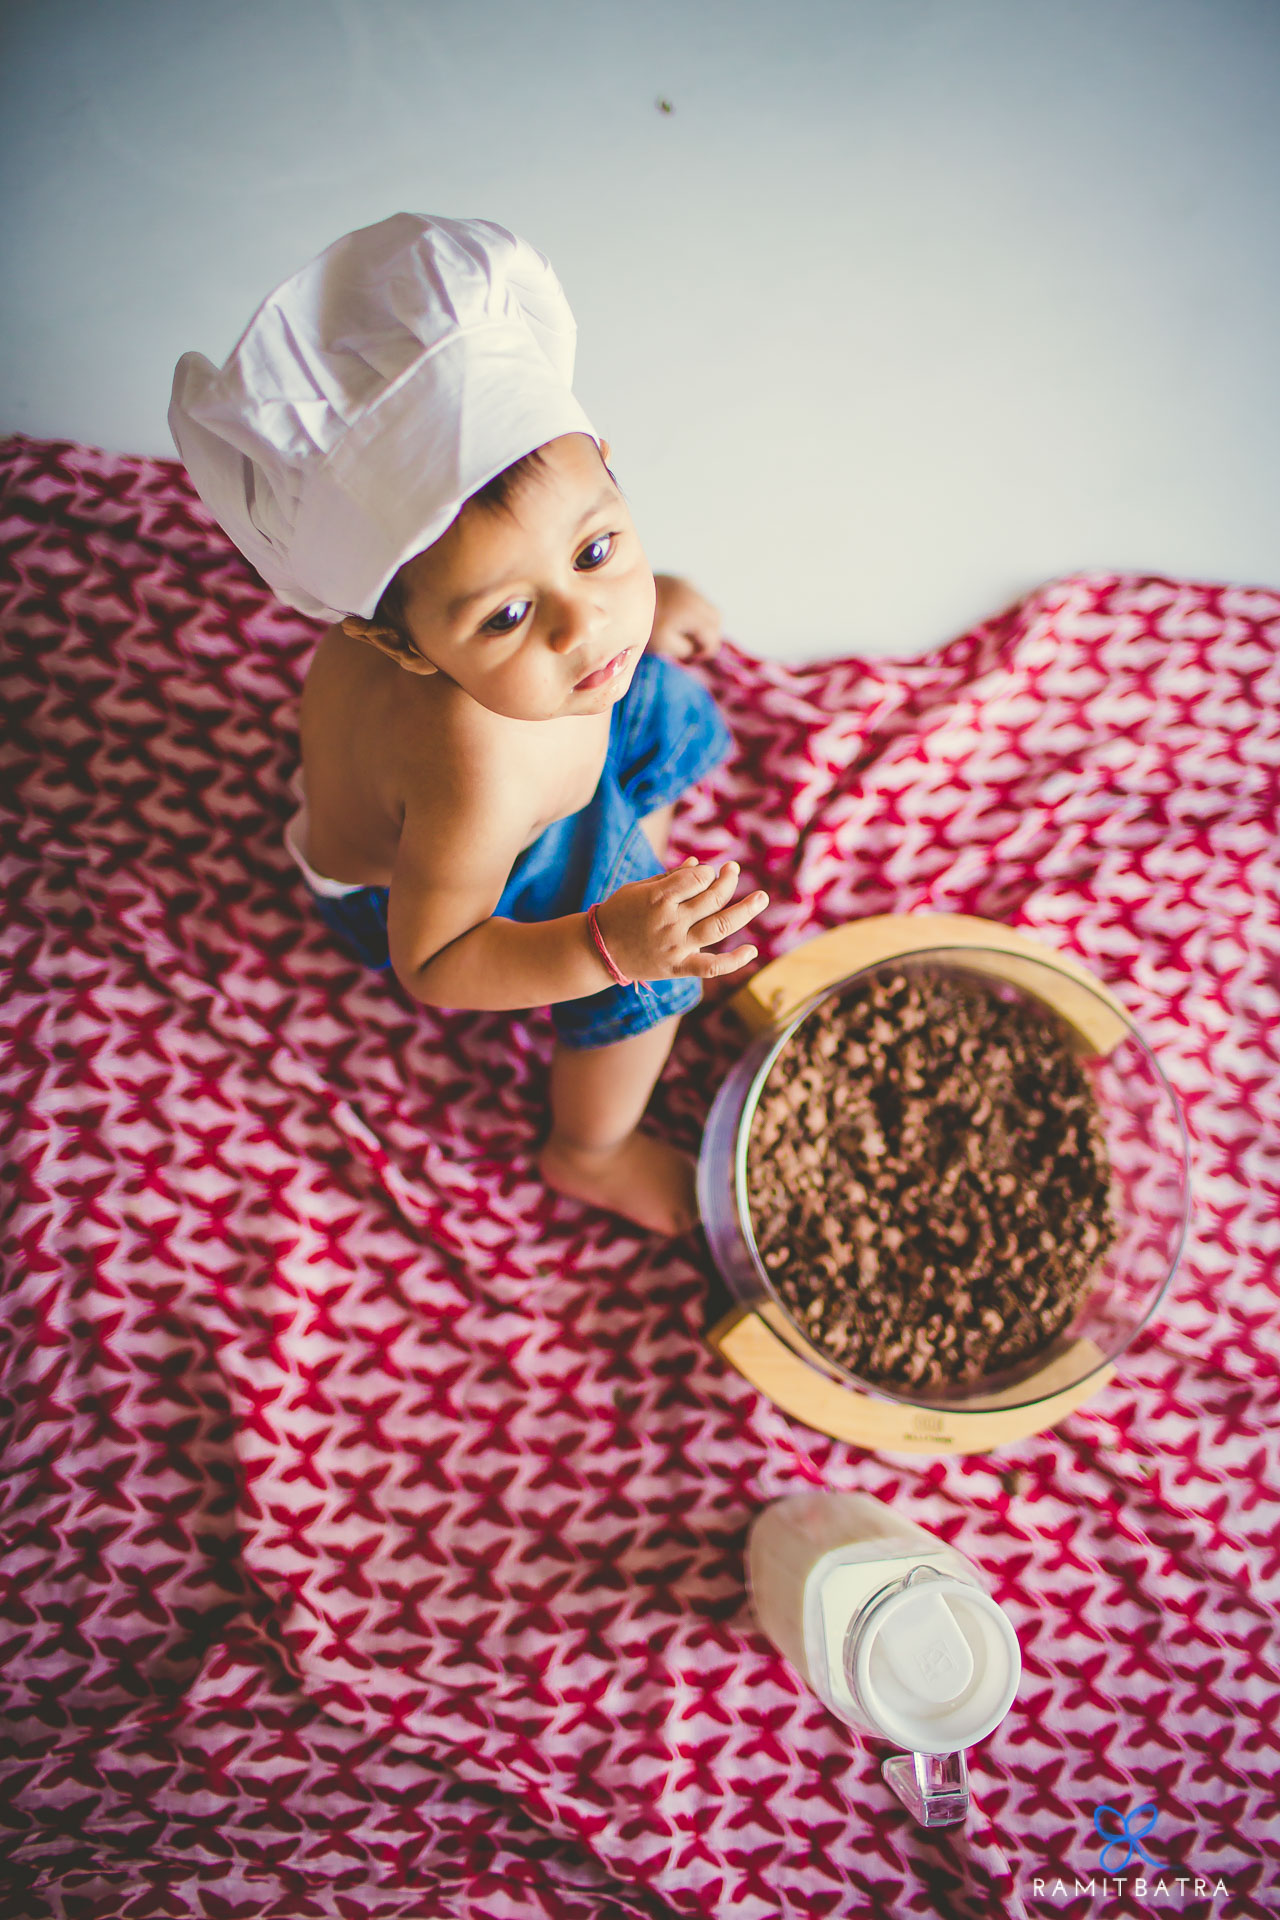 Kiddie-Infant-Photography-RamitBatra_13